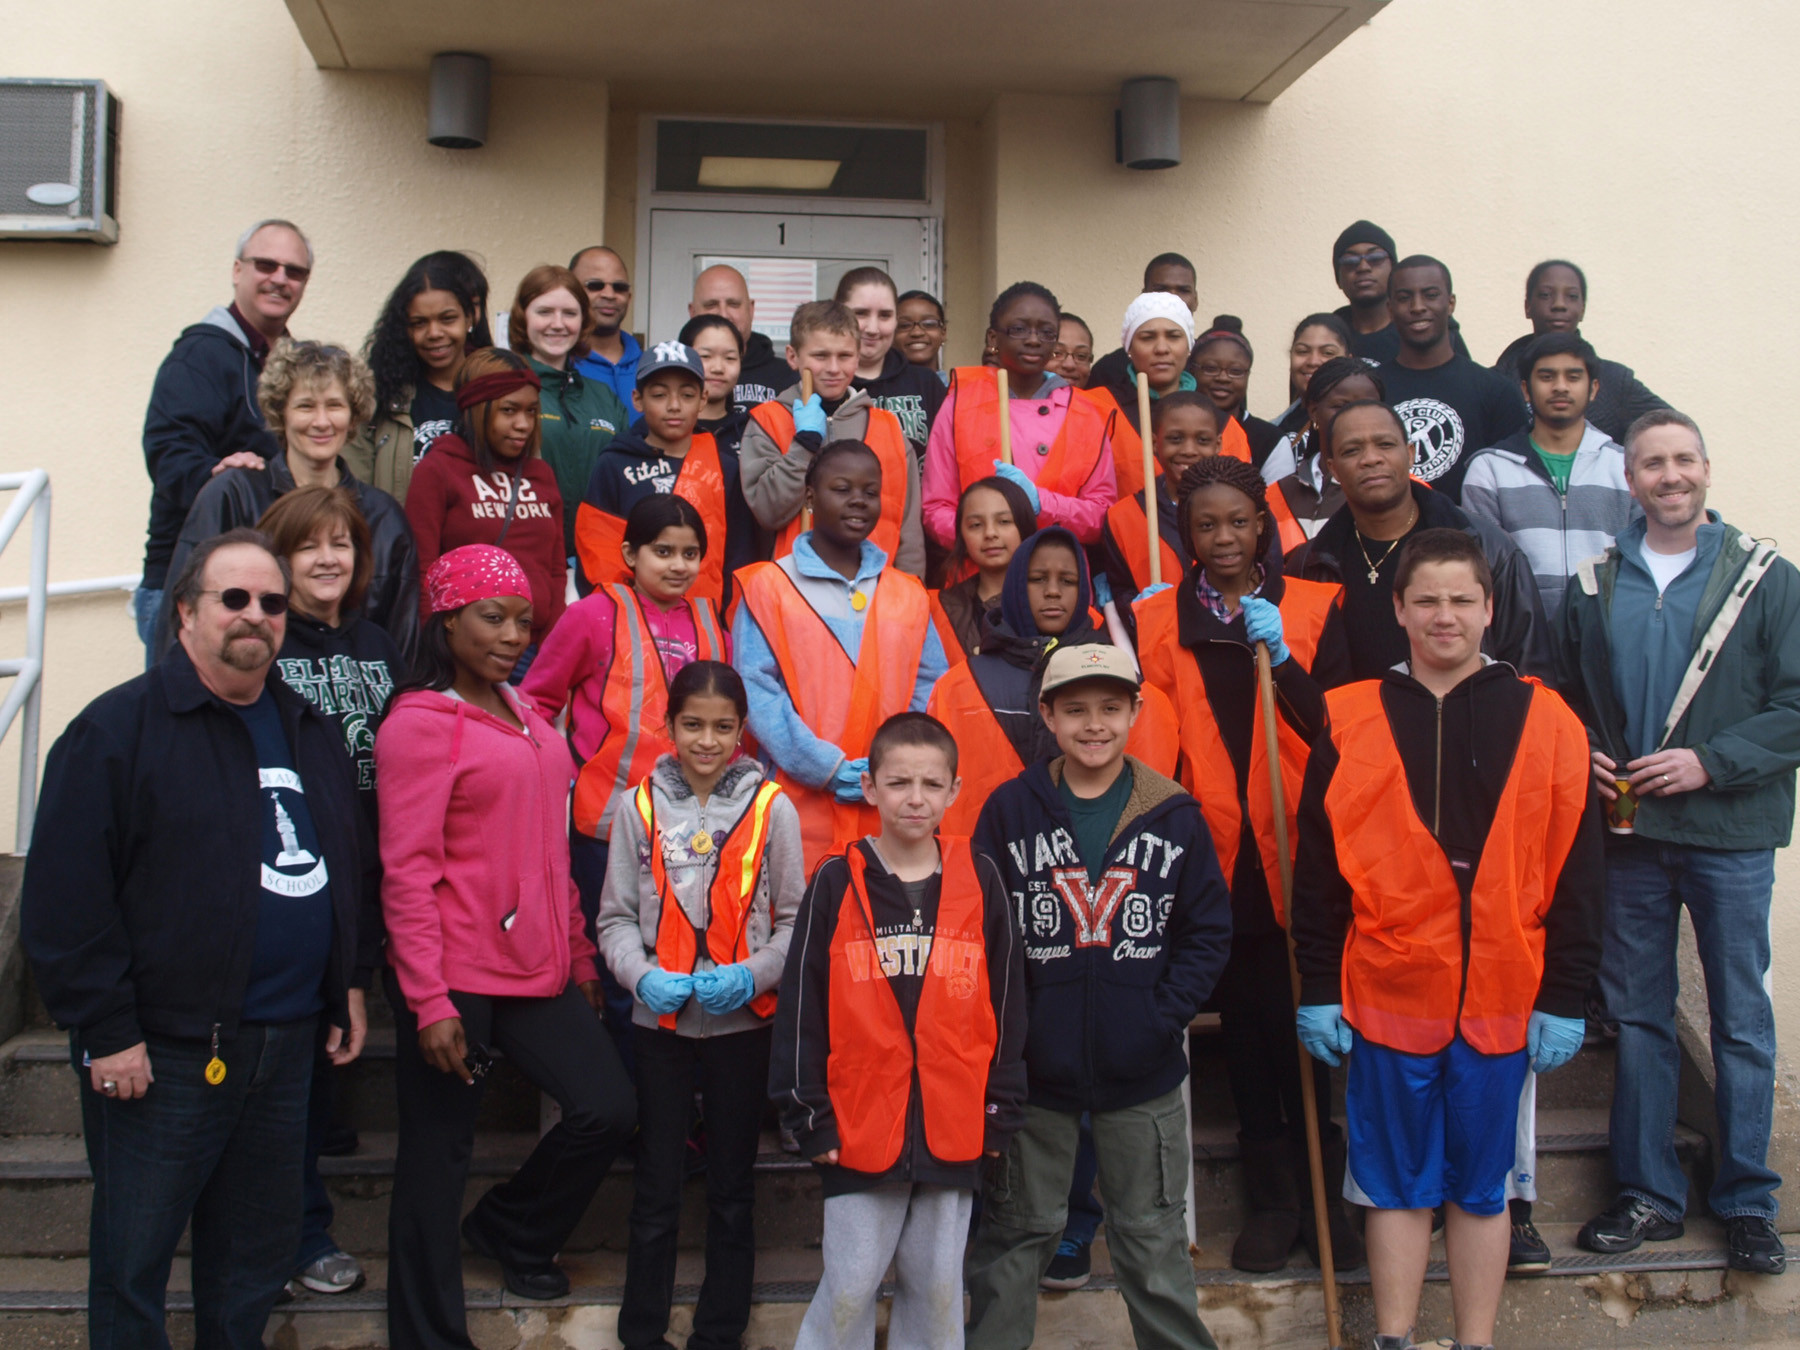 Children and adults alike helped to make the neighborhood a cleaner place for Earth Day.